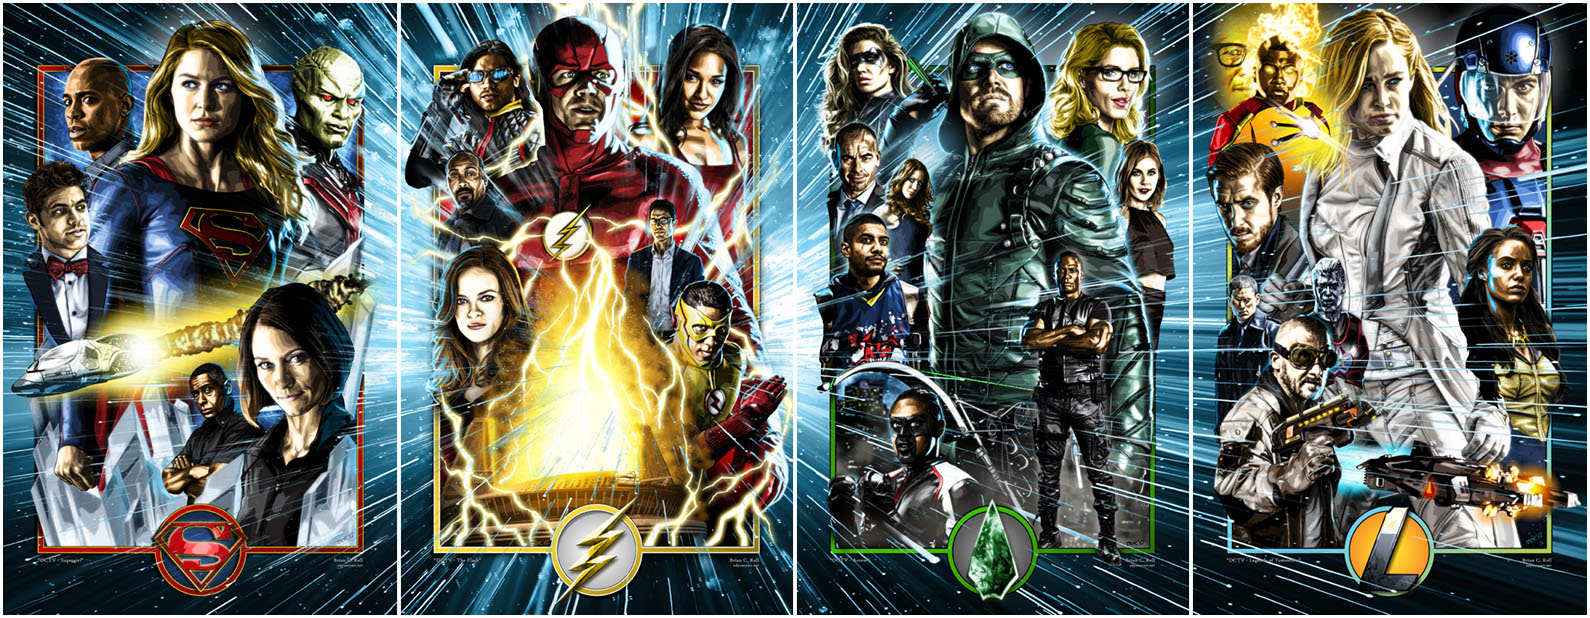 dctv-crossover-marketingfinal.jpg